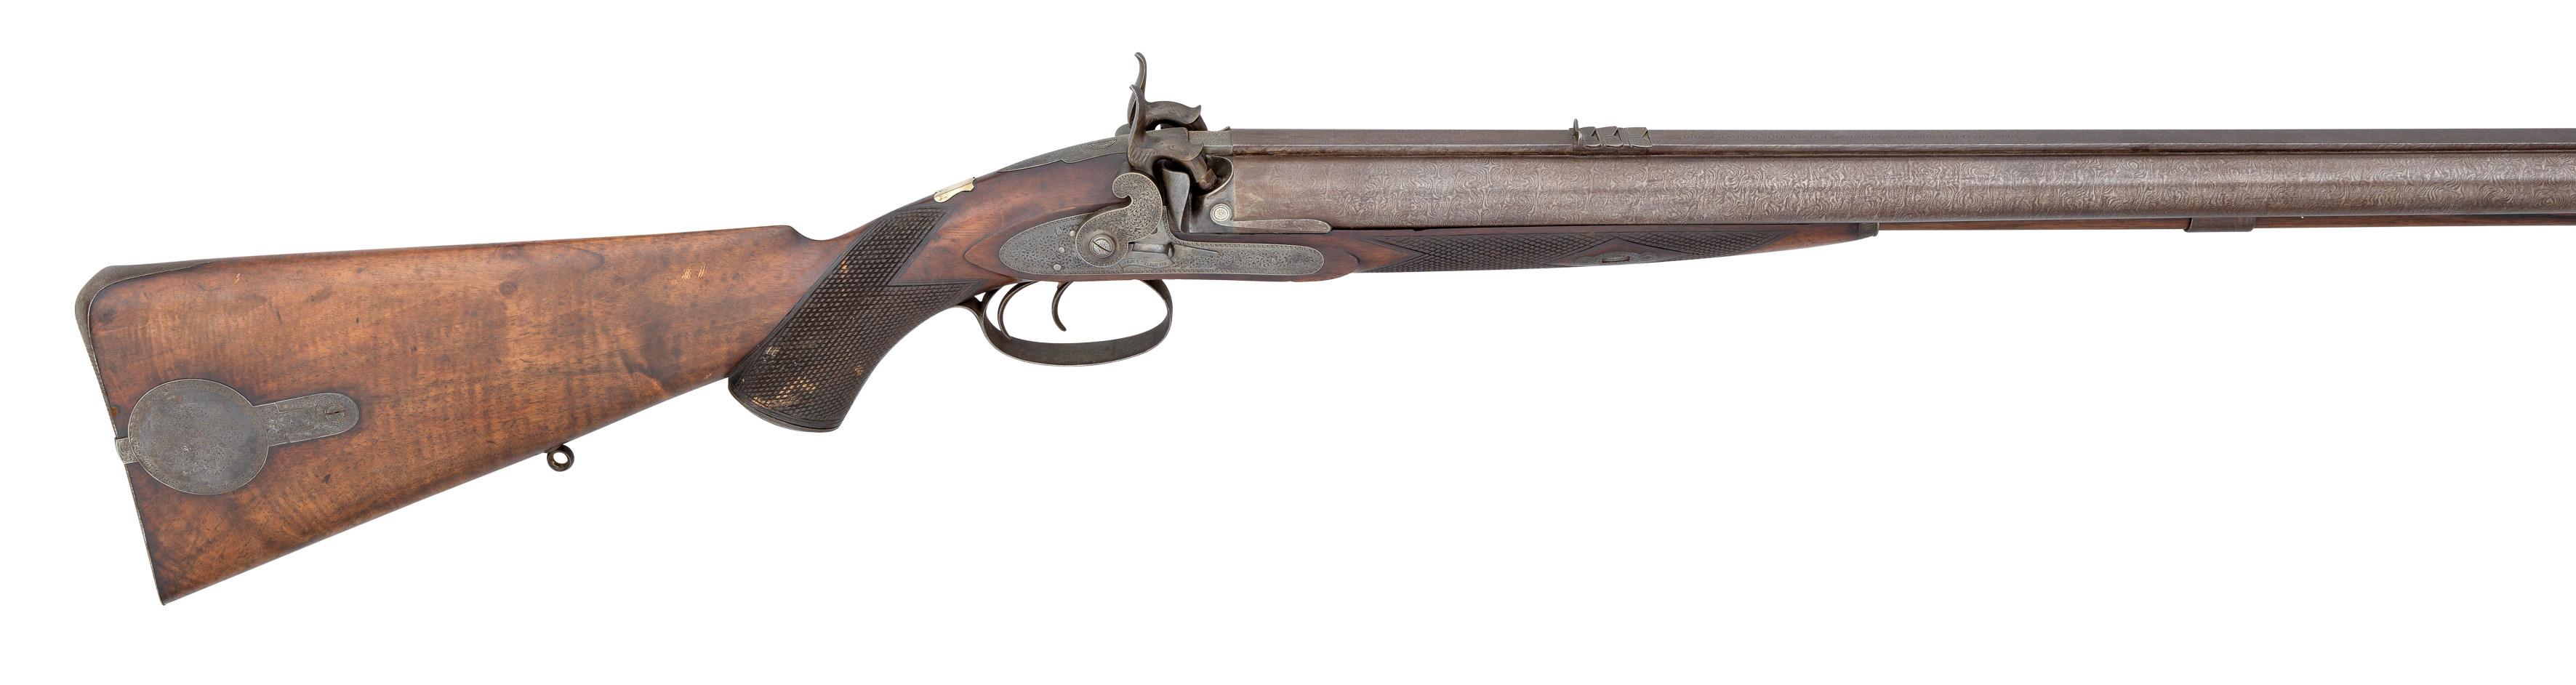 Ⓦ A .650 CALIBRE PERCUSSION BEST QUALITY DOUBLE RIFLE BY ALEXANDER HENRY^ 12 SOUTH ST. ANDREW ST^